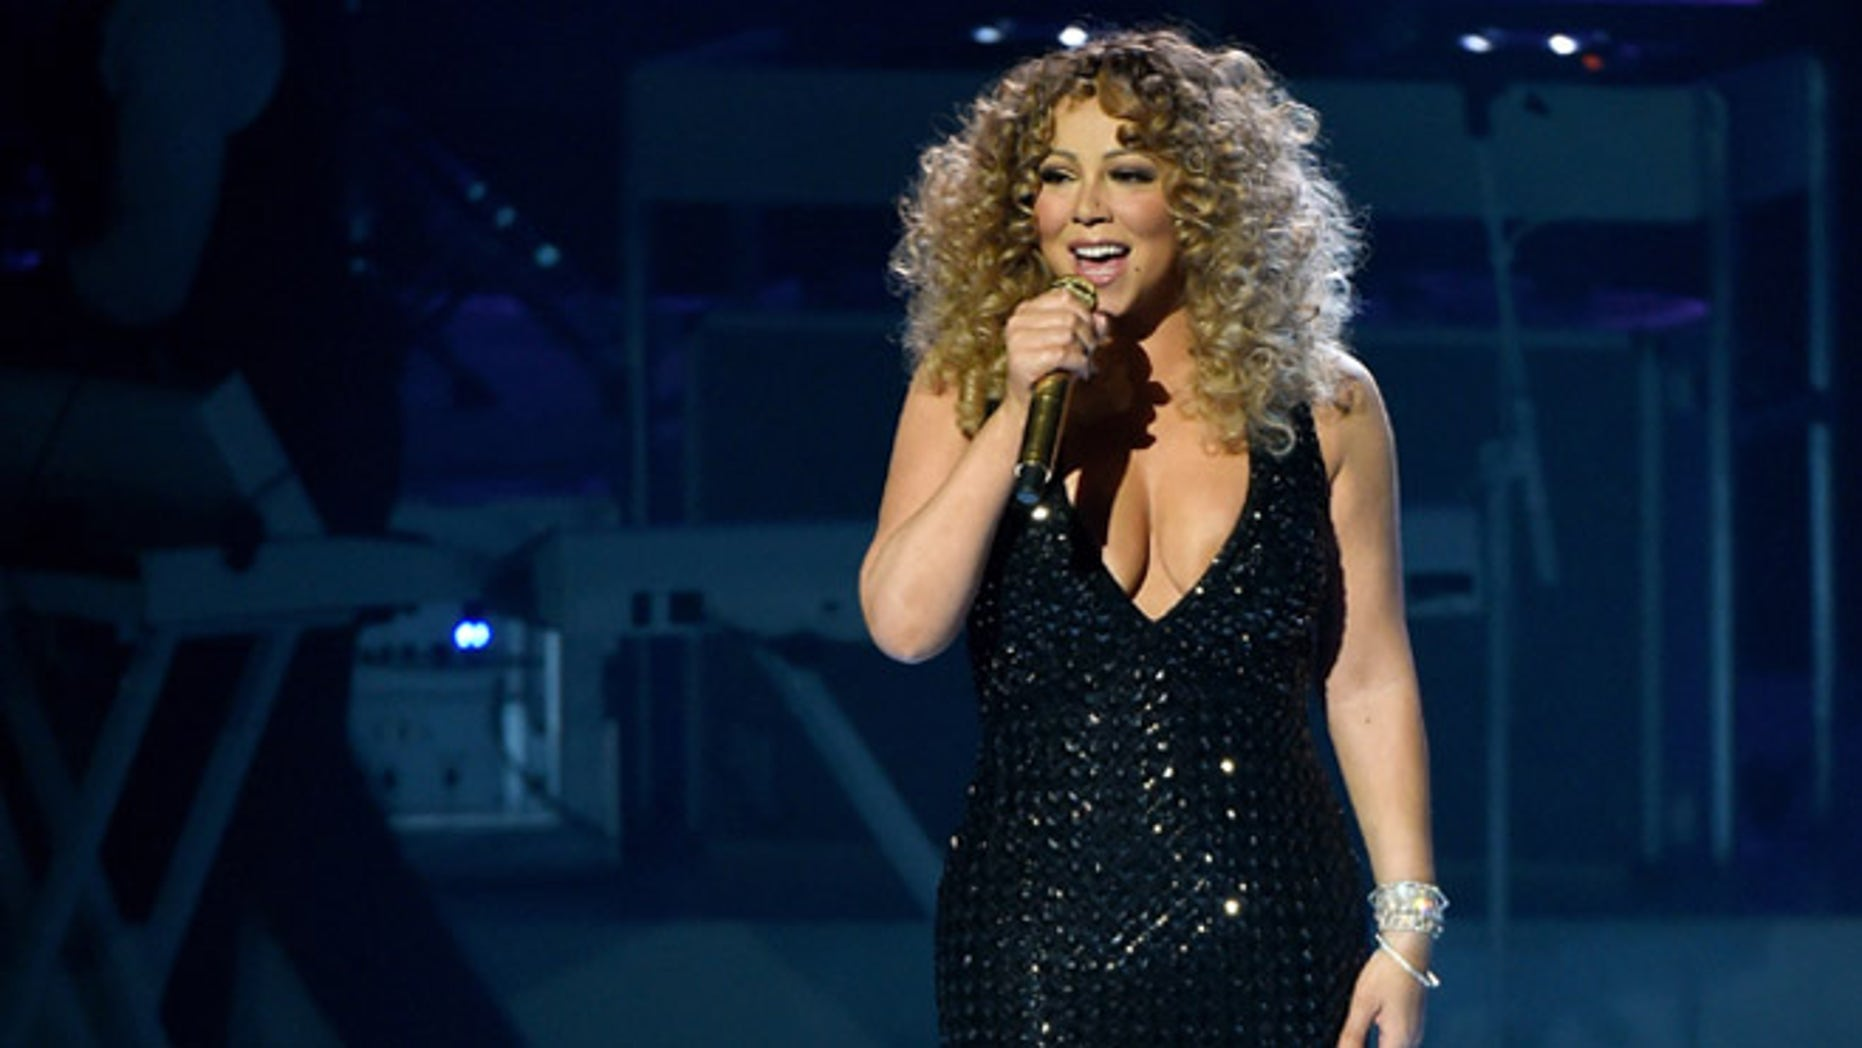 """LAS VEGAS, NV - MAY 06:  Singer/songwriter Mariah Carey performs during the launch of her residency """"MARIAH #1 TO INFINITY"""" at The Colosseum at Caesars Palace on May 6, 2015 in Las Vegas, Nevada.  (Photo by Ethan Miller/Getty Images)"""